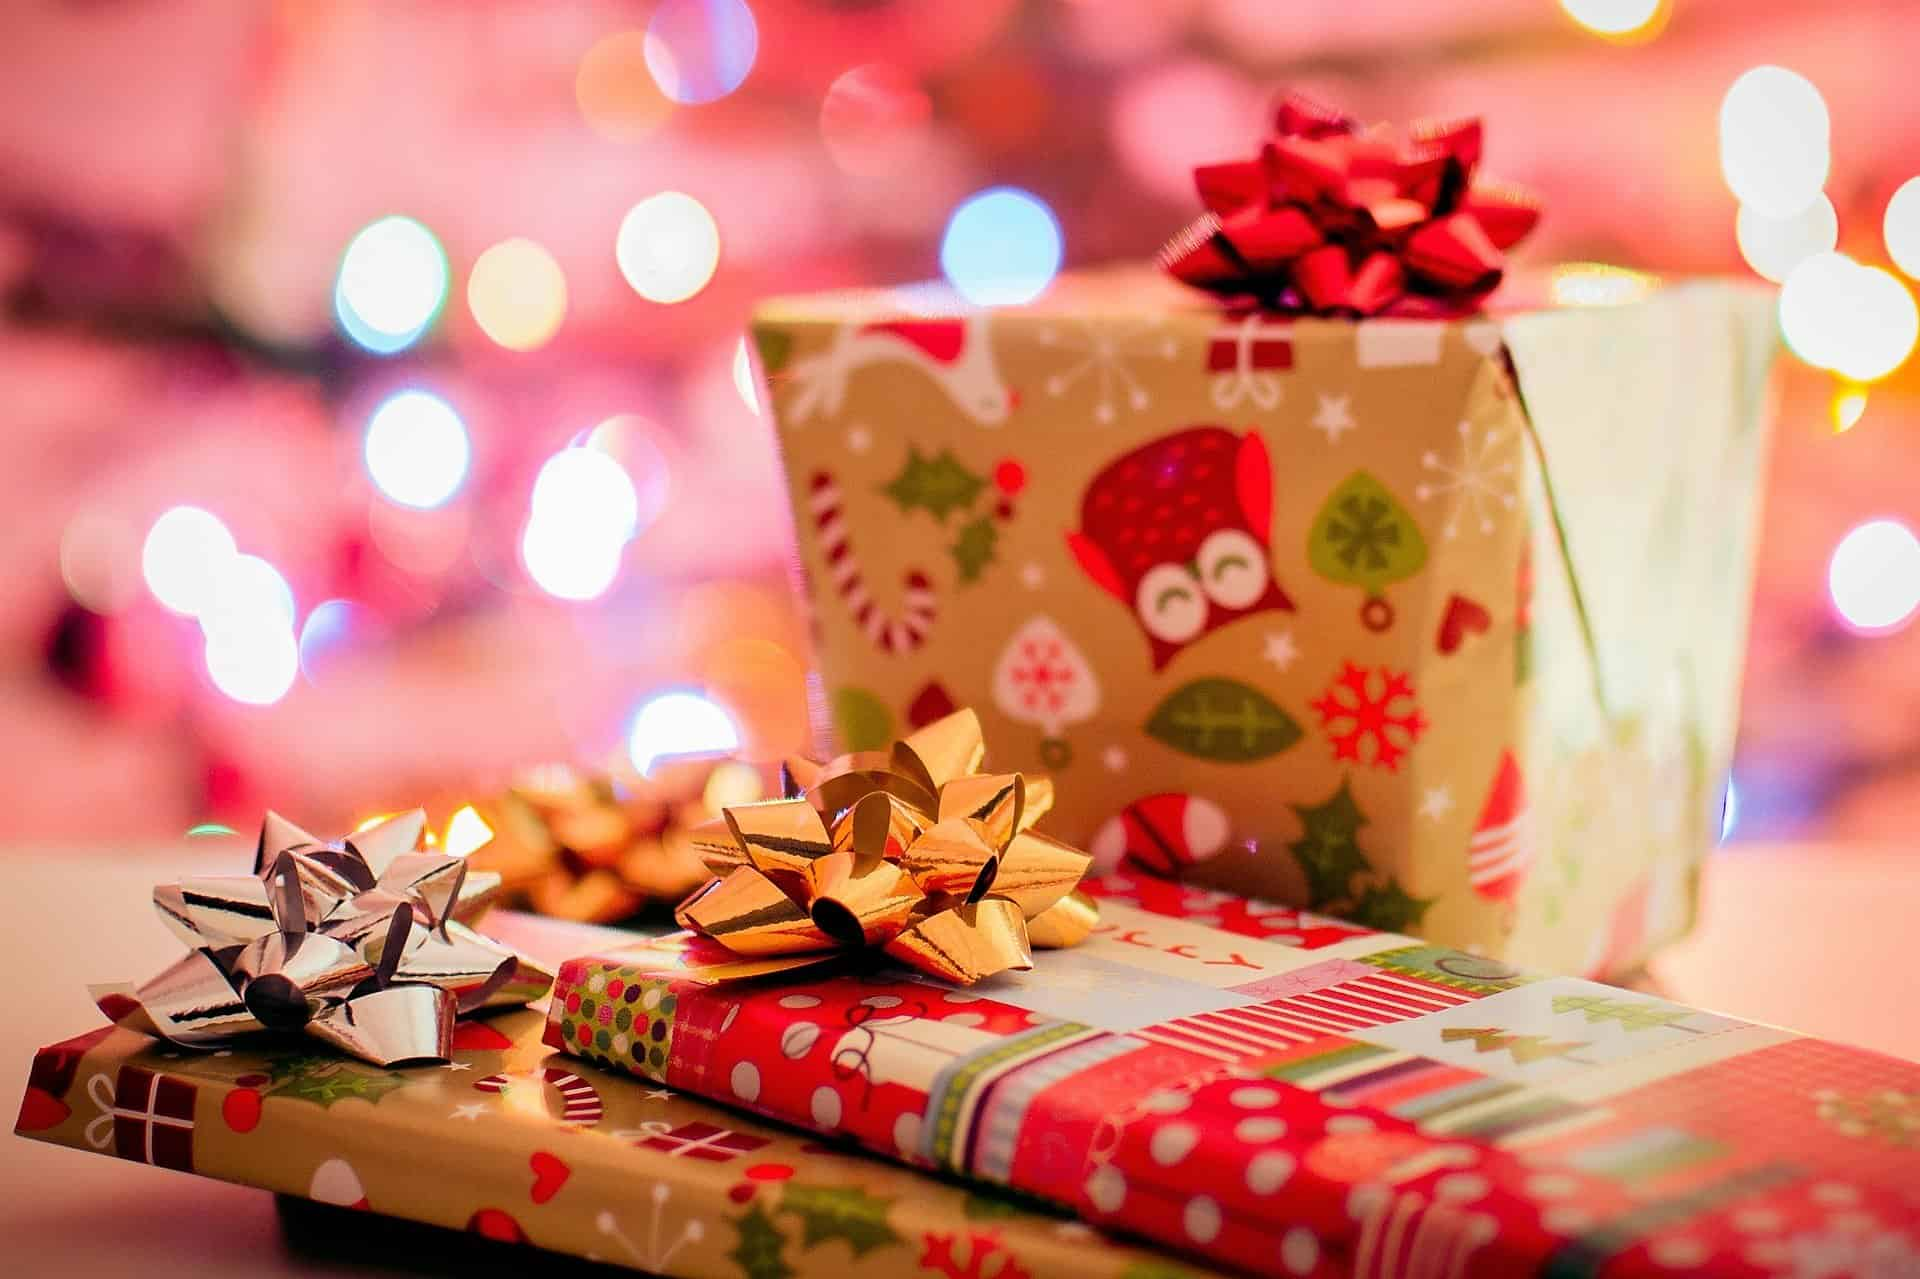 Christmas gift ideas for under $10